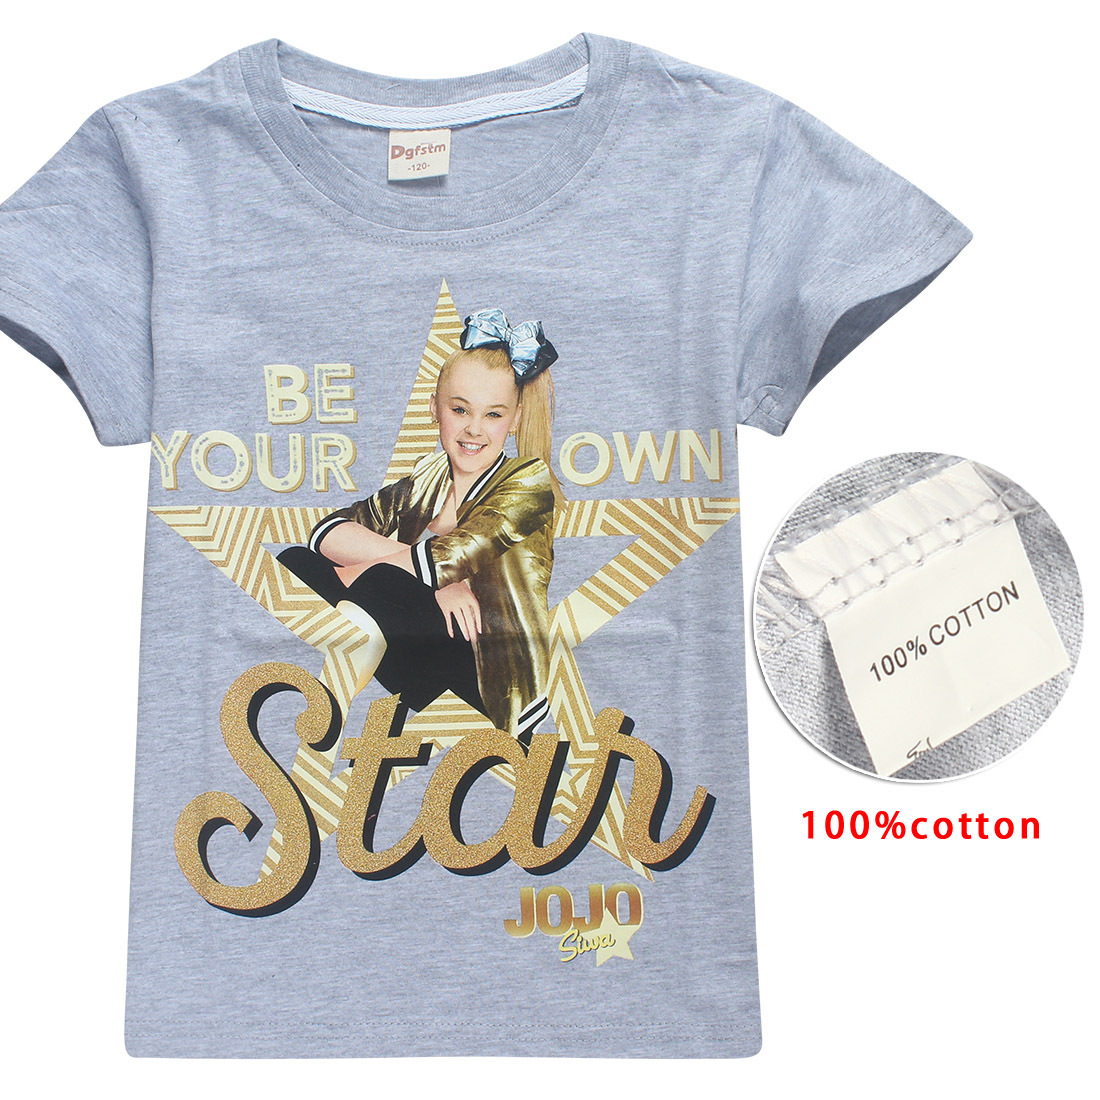 100% Cotton T-Shirts for Children 2018 Summer Jojo Siwa Baby Girls Tops Tees  + Hair Bows Toddler Moana Trolls Kids Clothes 6-14y d89814325848